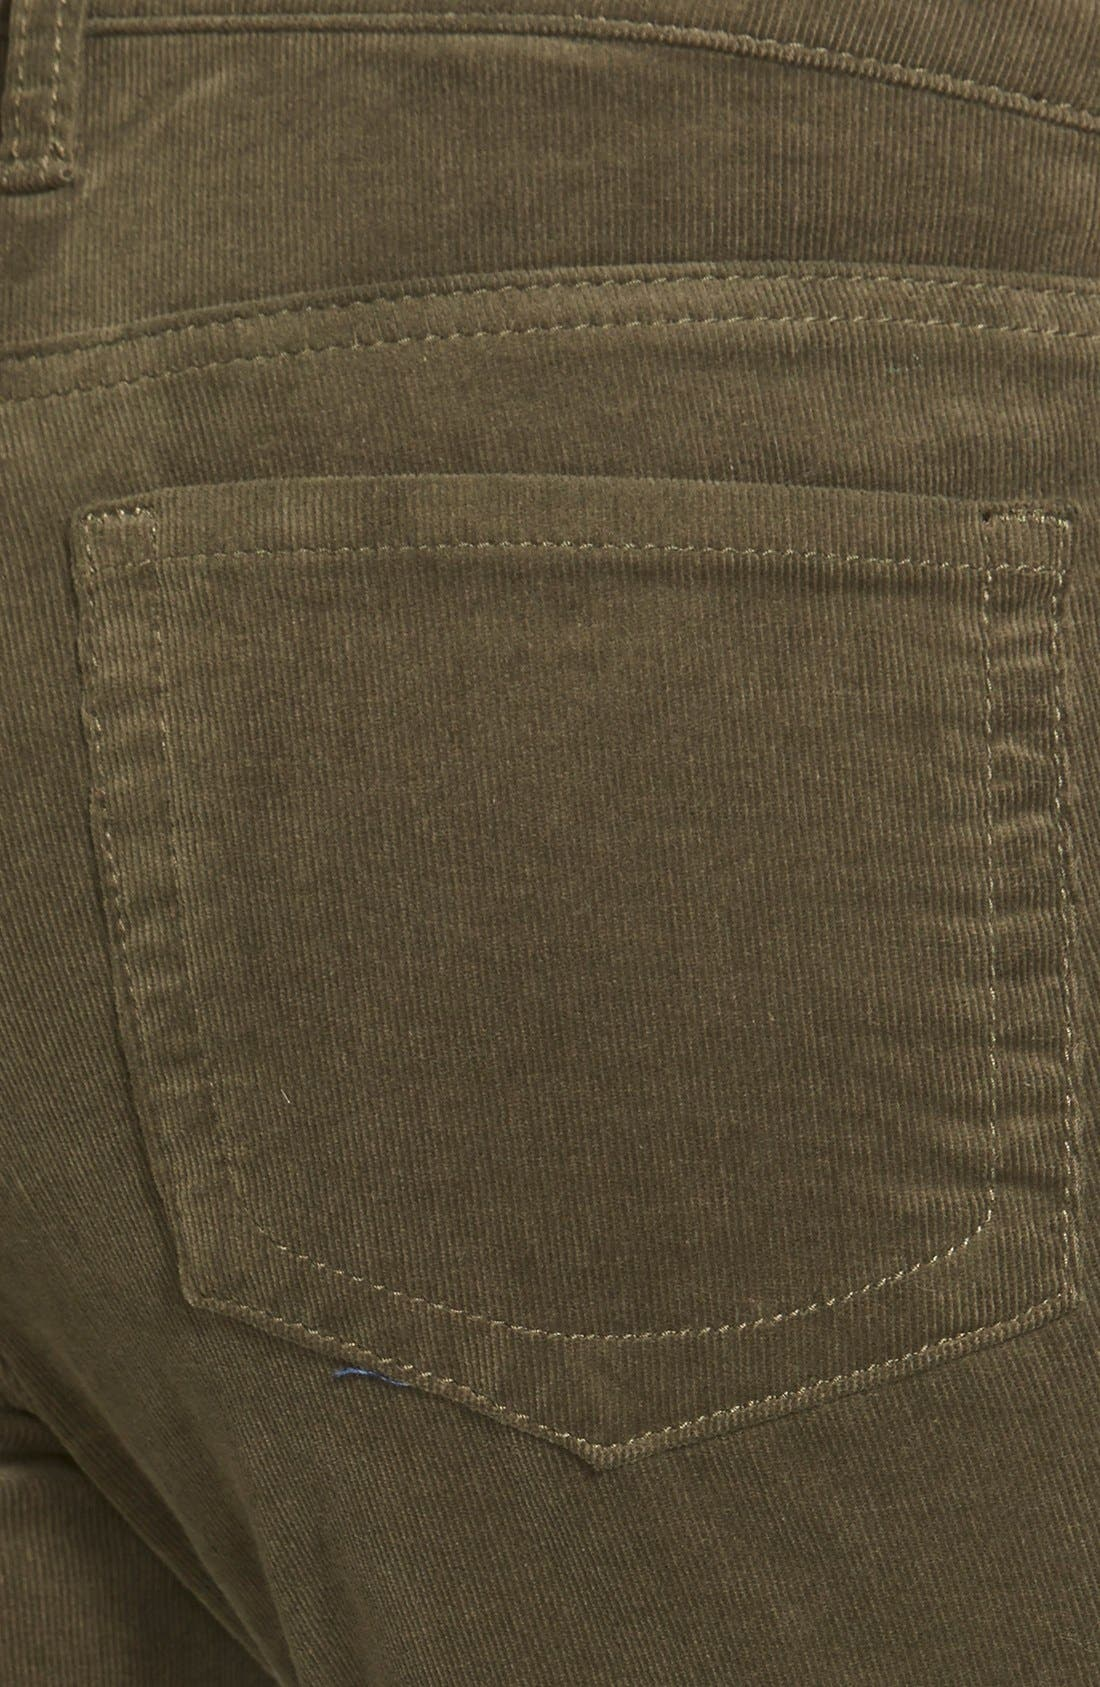 Baby Bootcut Corduroy Jeans,                             Alternate thumbnail 66, color,